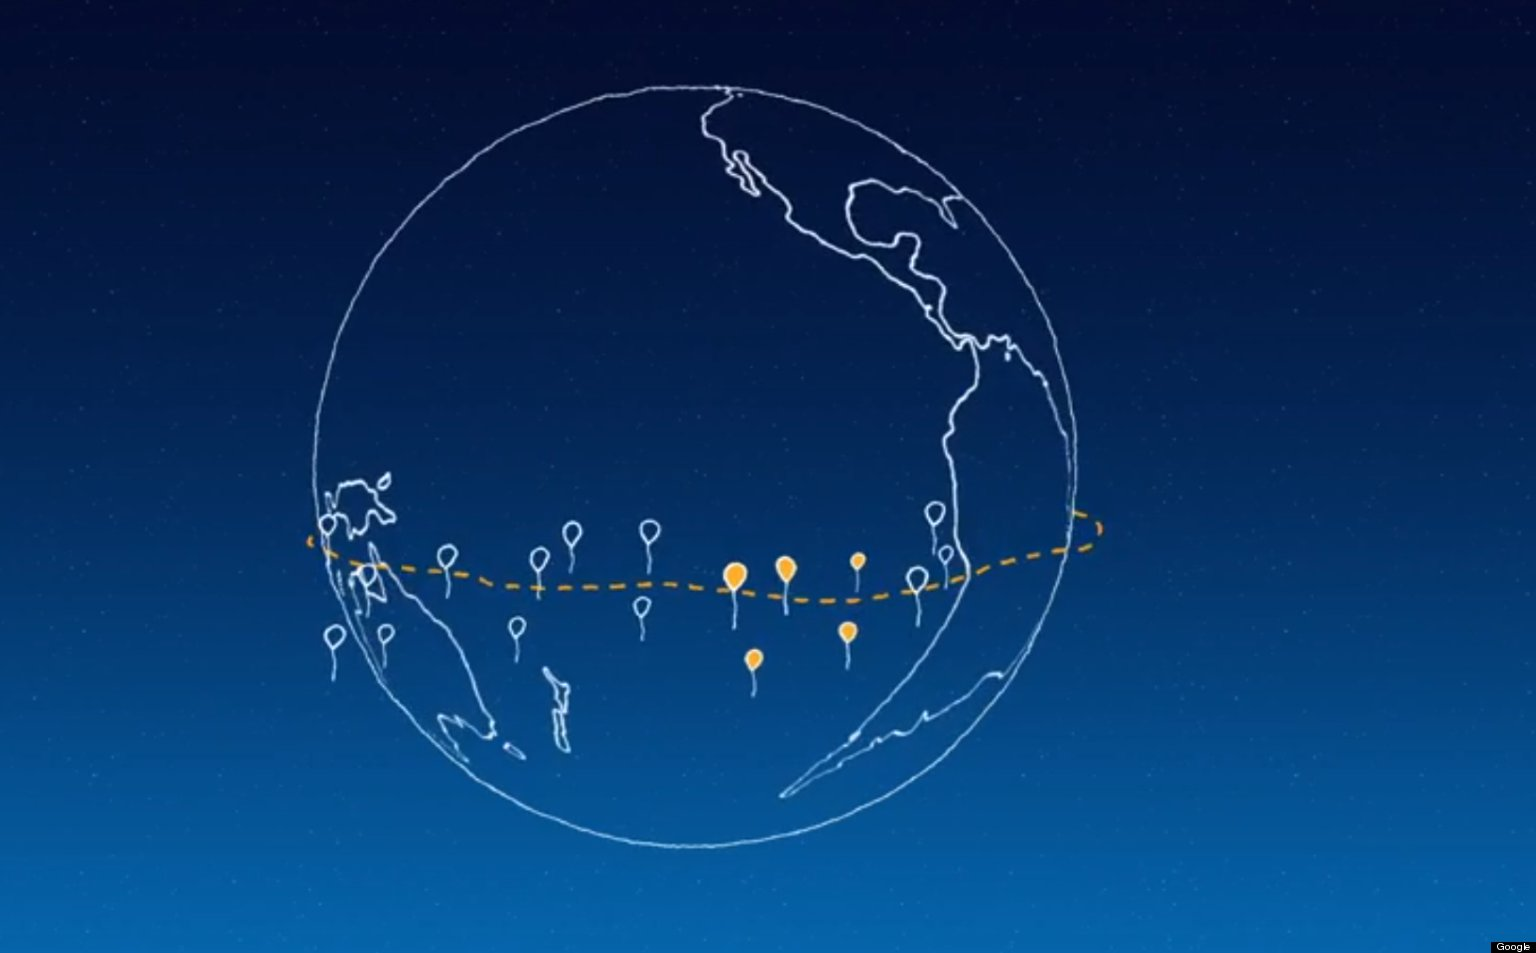 https://i2.wp.com/i.huffpost.com/gen/1194626/thumbs/o-PROJECT-LOON-GOOGLE-INTERNET-facebook.jpg